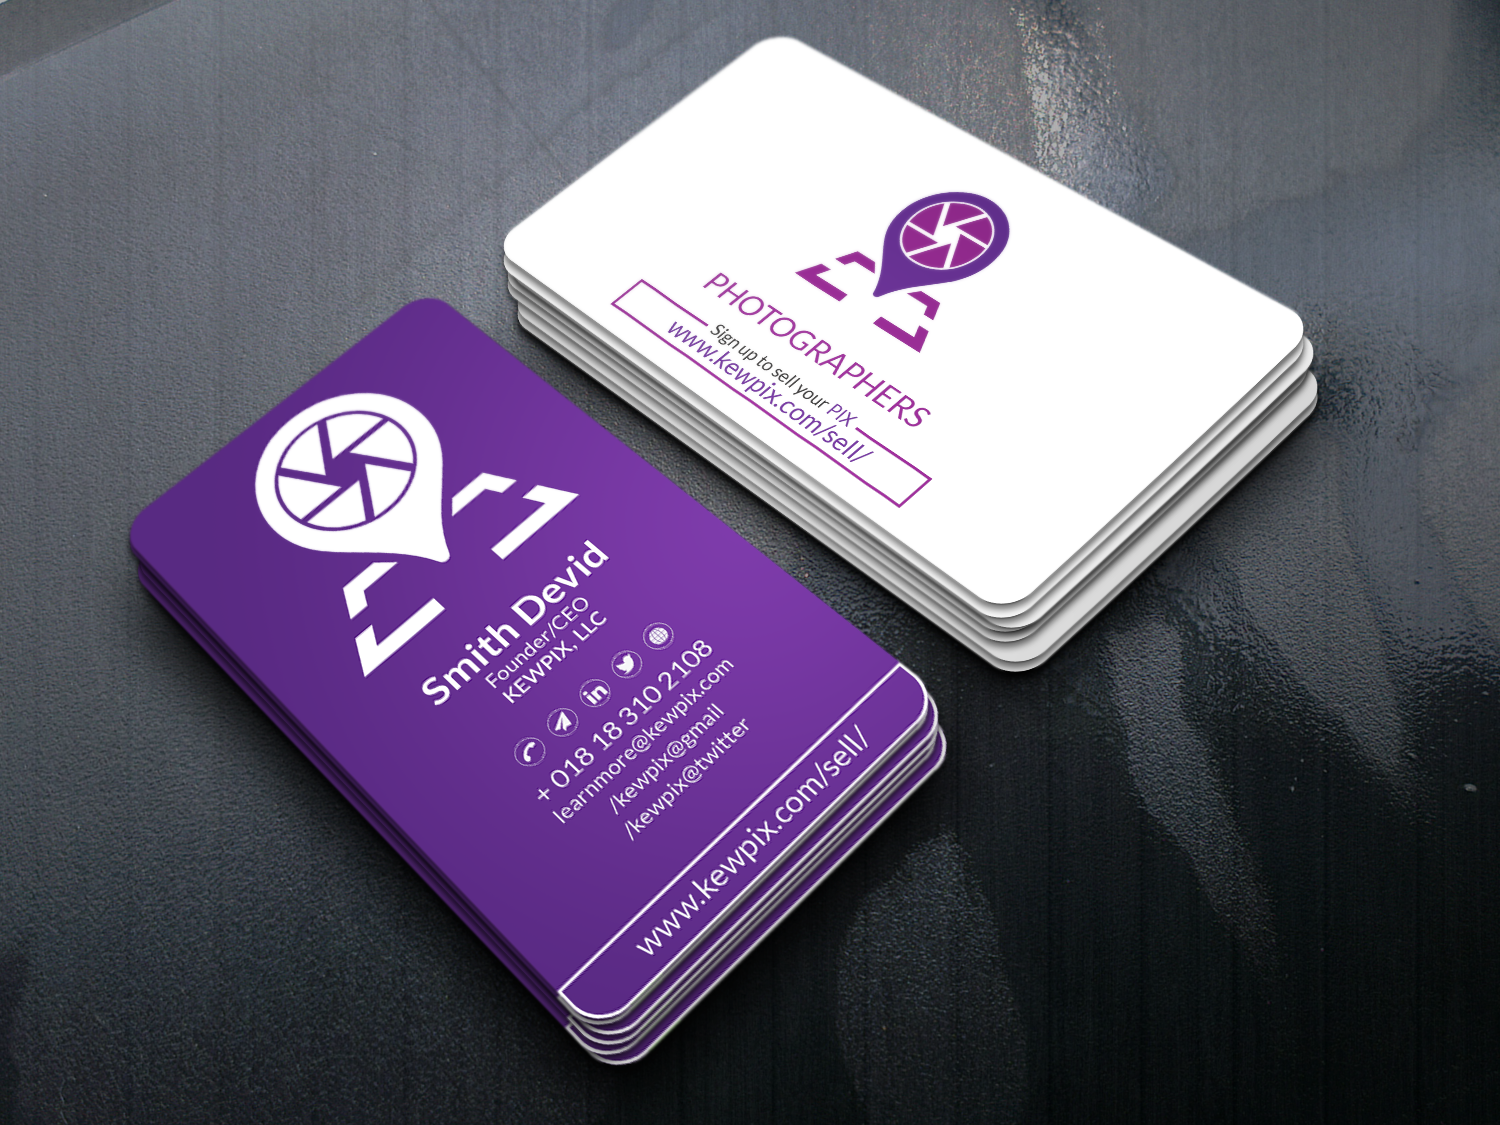 Business Card Designer for the last 5 years